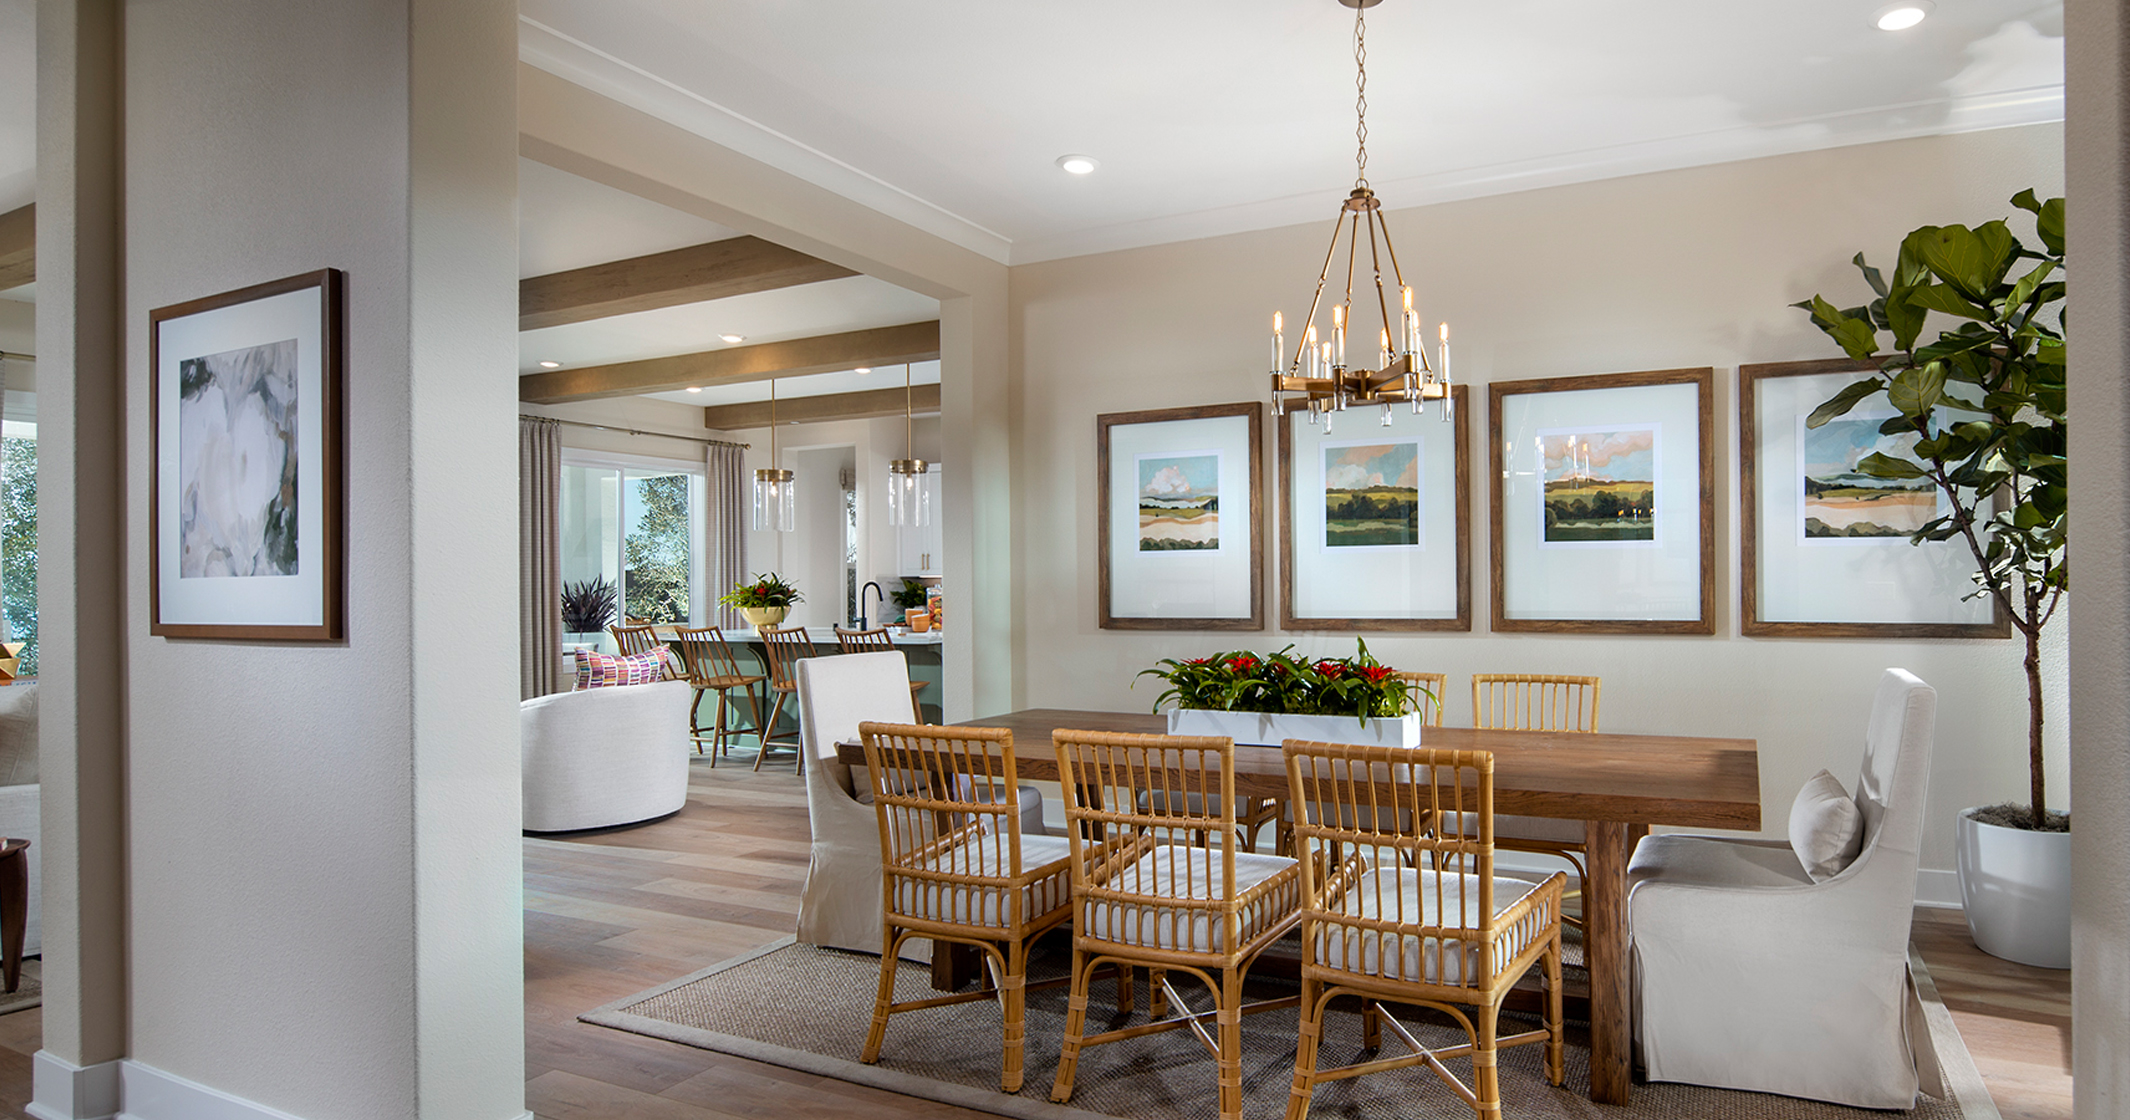 Plan 3 Model Home Dining Room